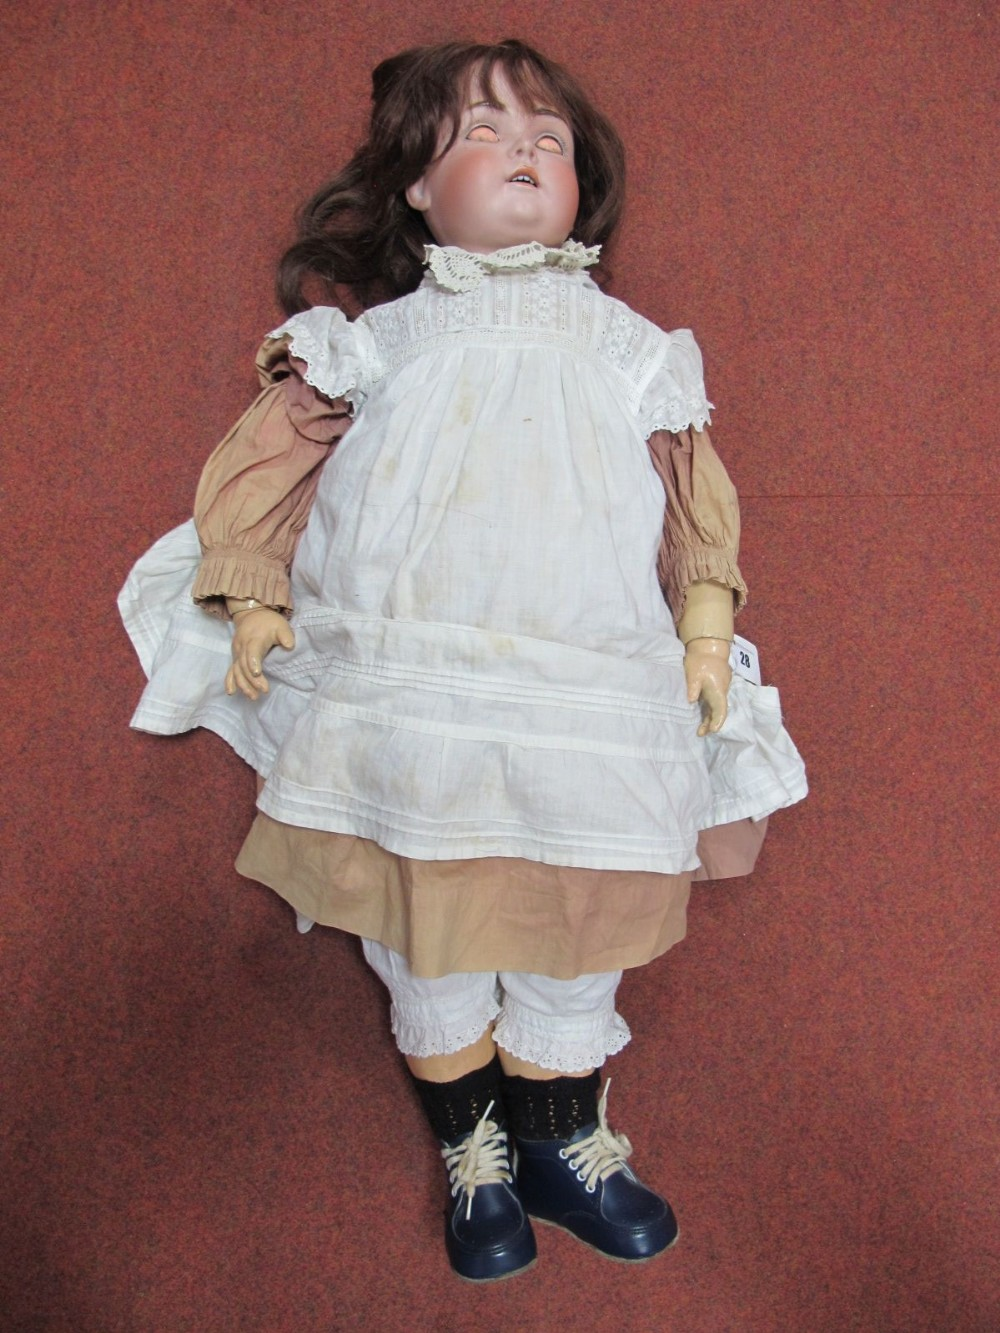 Lot 28 - A Large Early XX Century Bisque Headed Doll, head stamped 191. Crack to back of head, sleepy eyes,